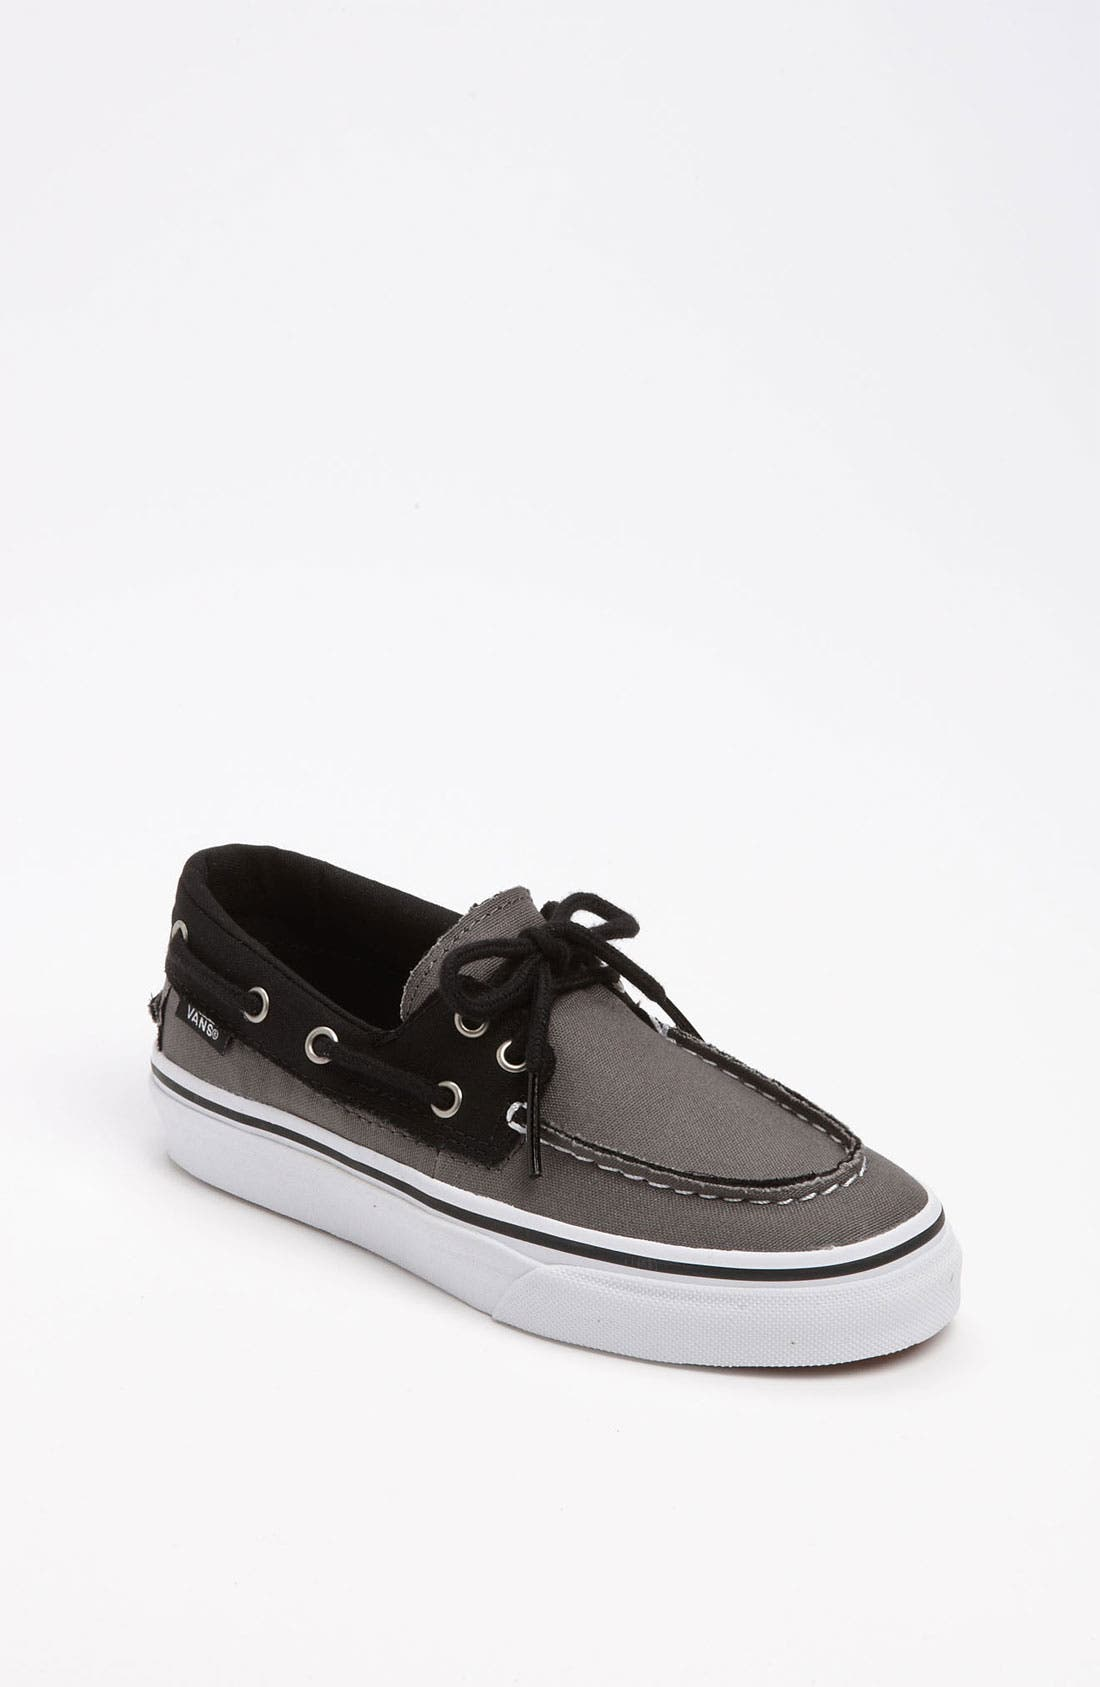 Alternate Image 1 Selected - Vans 'Zapato del Barco' Boat Shoe (Baby, Walker, Toddler, Little Kid & Big Kid)